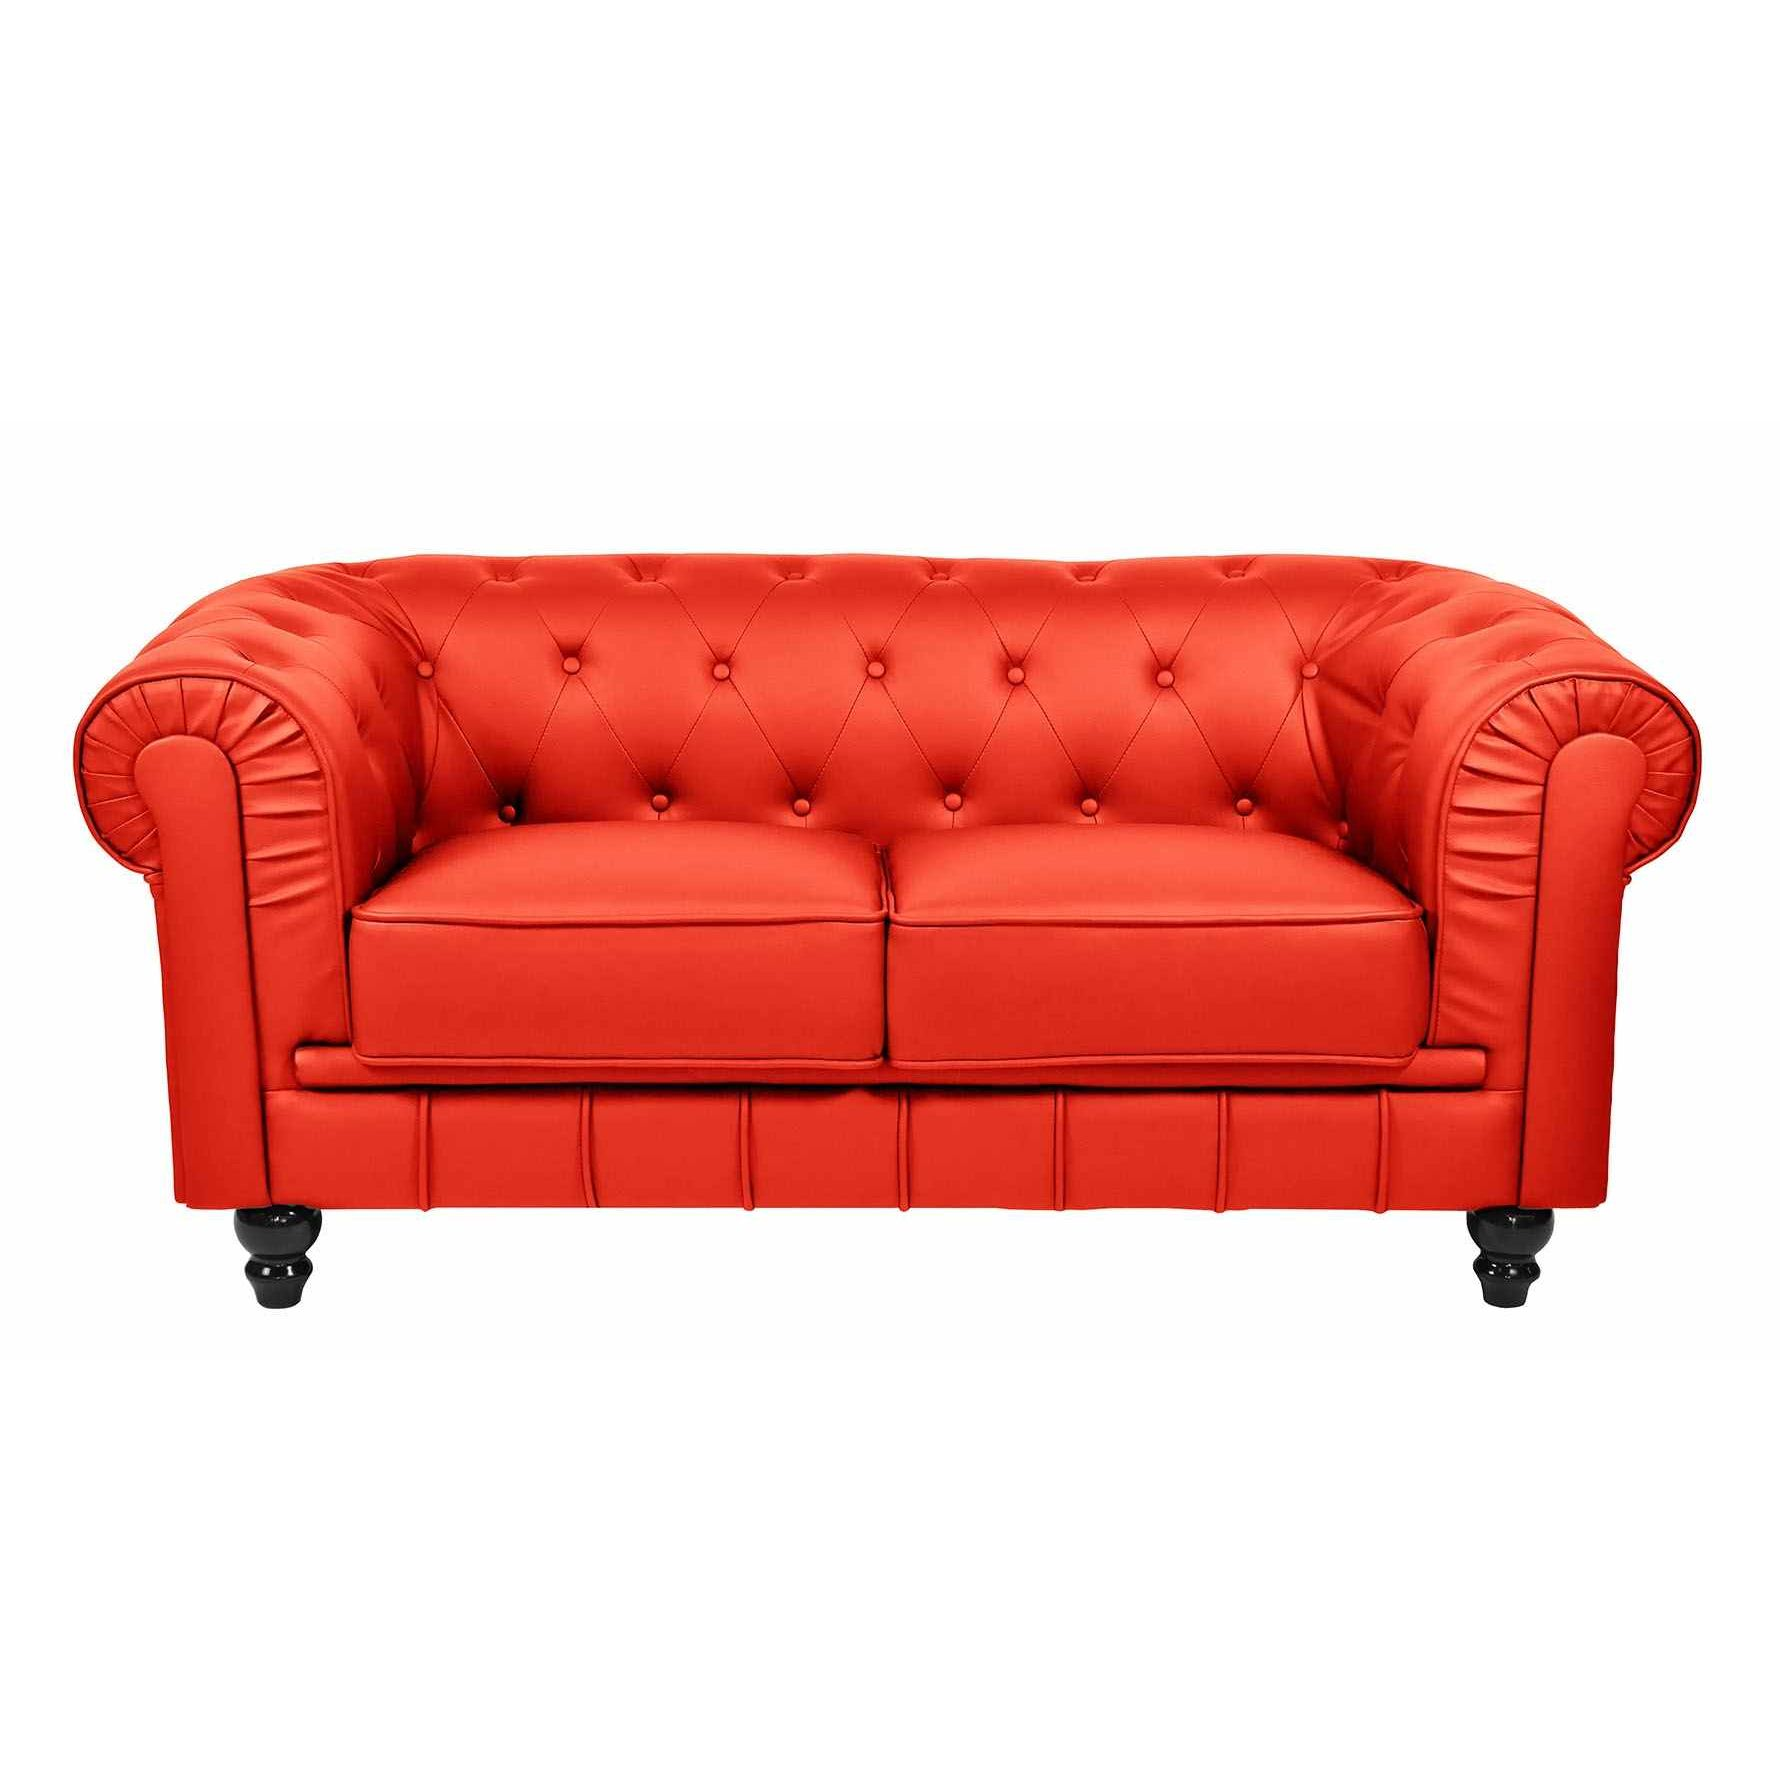 deco in paris canape 2 places rouge chesterfield can chester 2p pu rouge